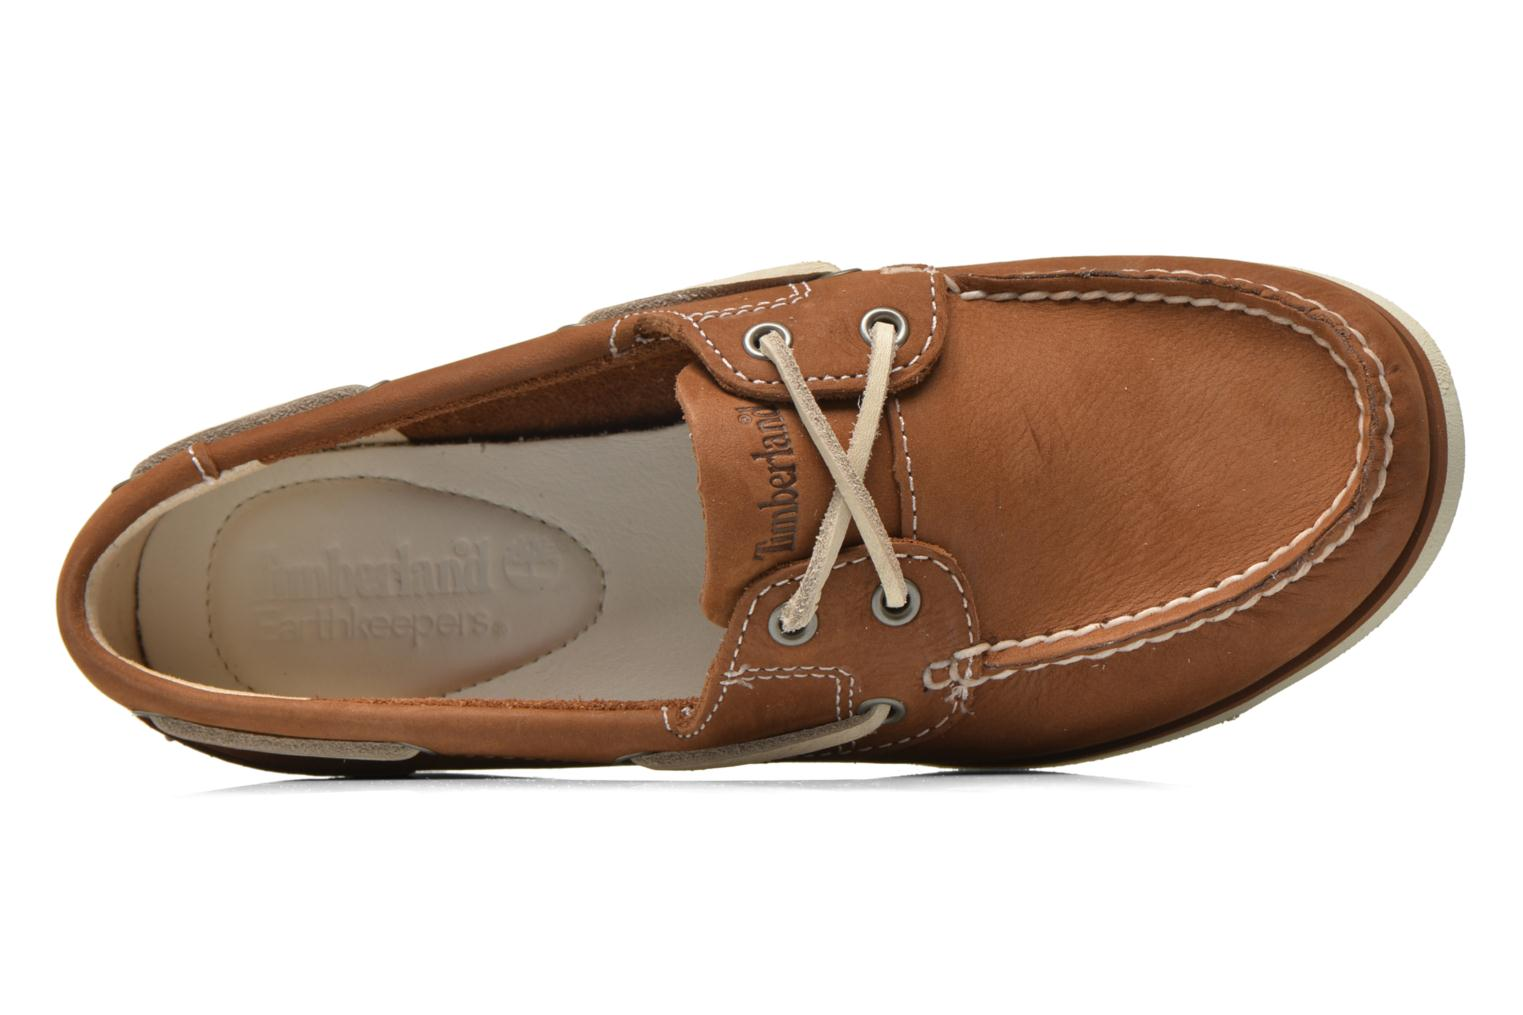 Chaussures à lacets Timberland Classic Boat Unlined Boat Shoe Marron vue gauche